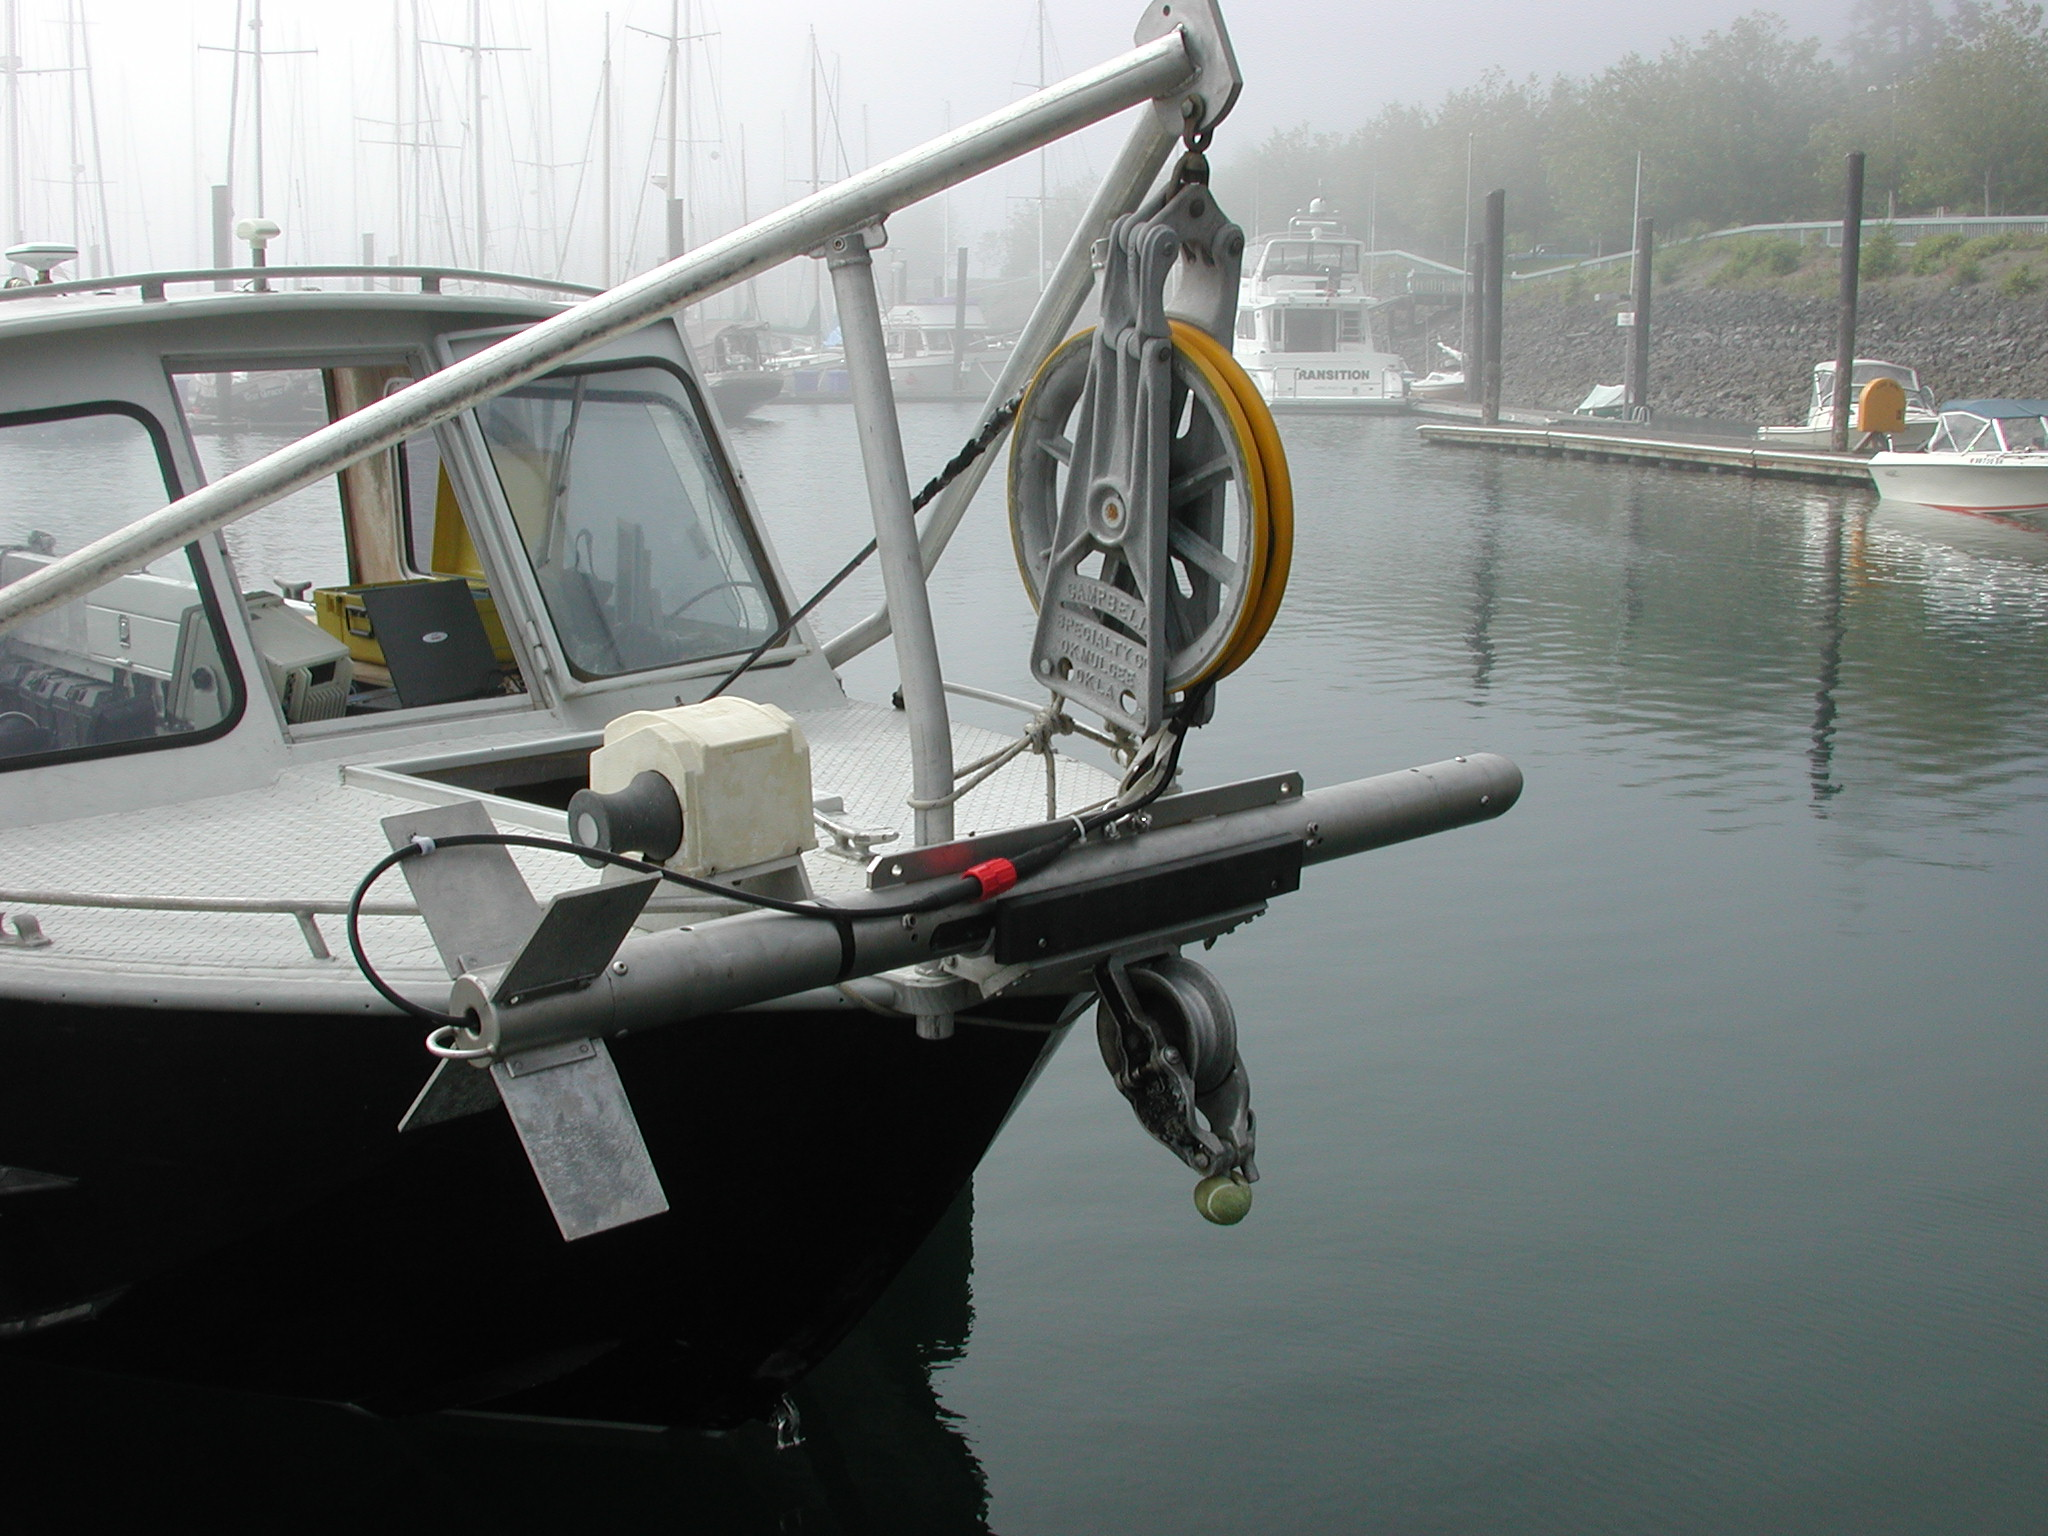 Figure 1. Survey skiff with string block and towfish on bow